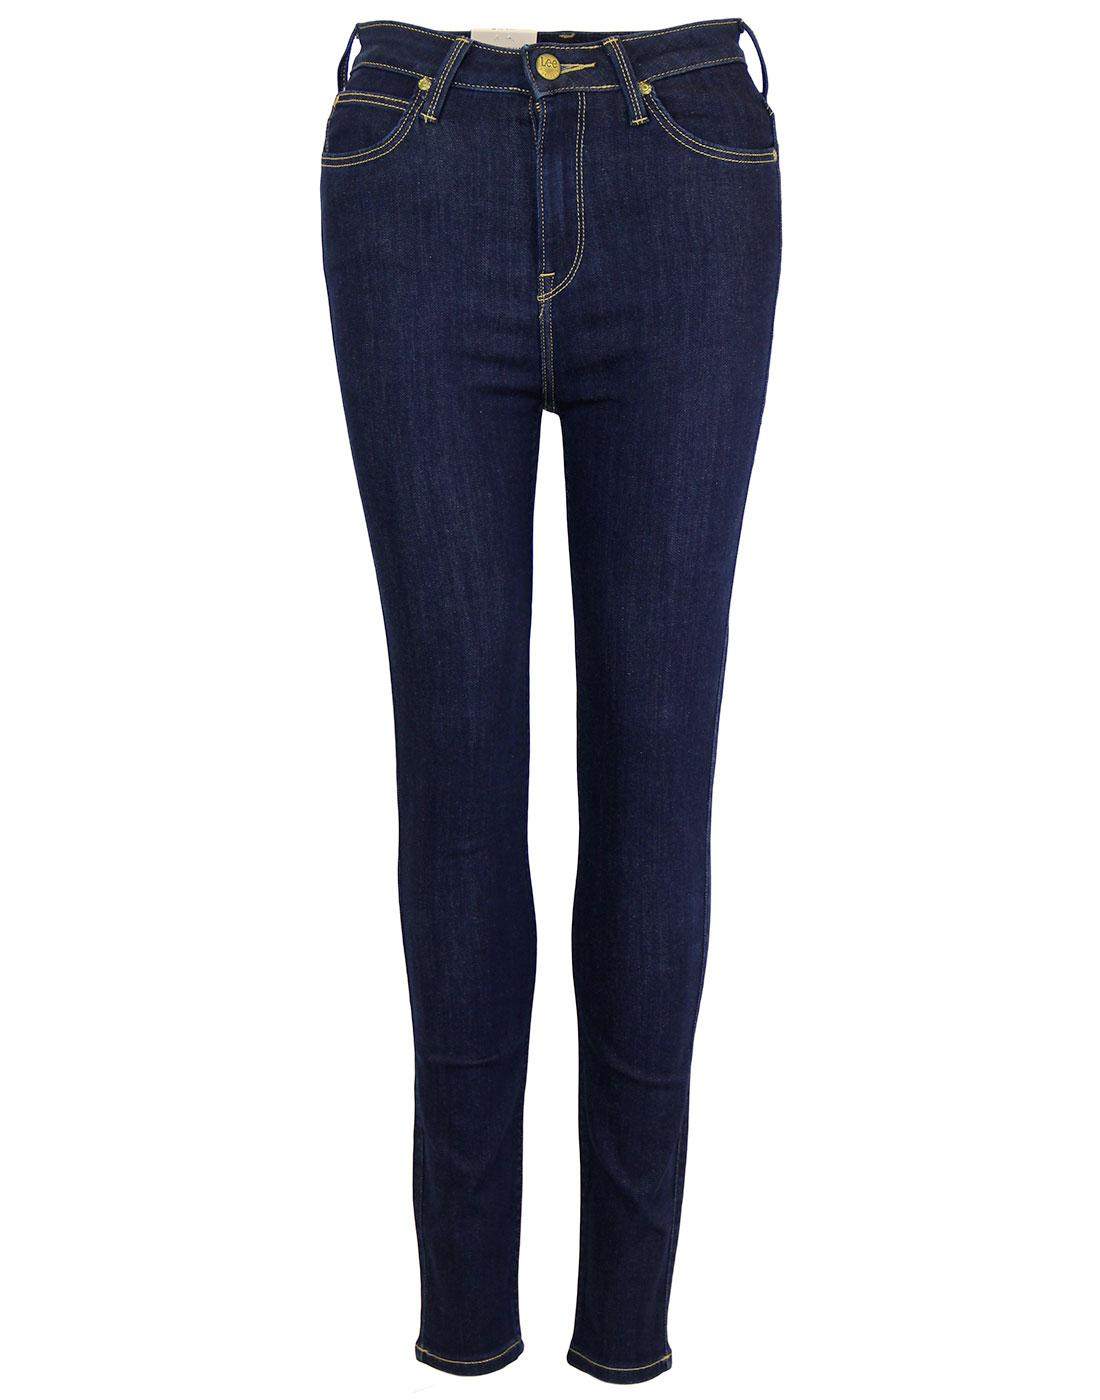 Skyler LEE Retro High Waist Skinny Denim Jeans SB